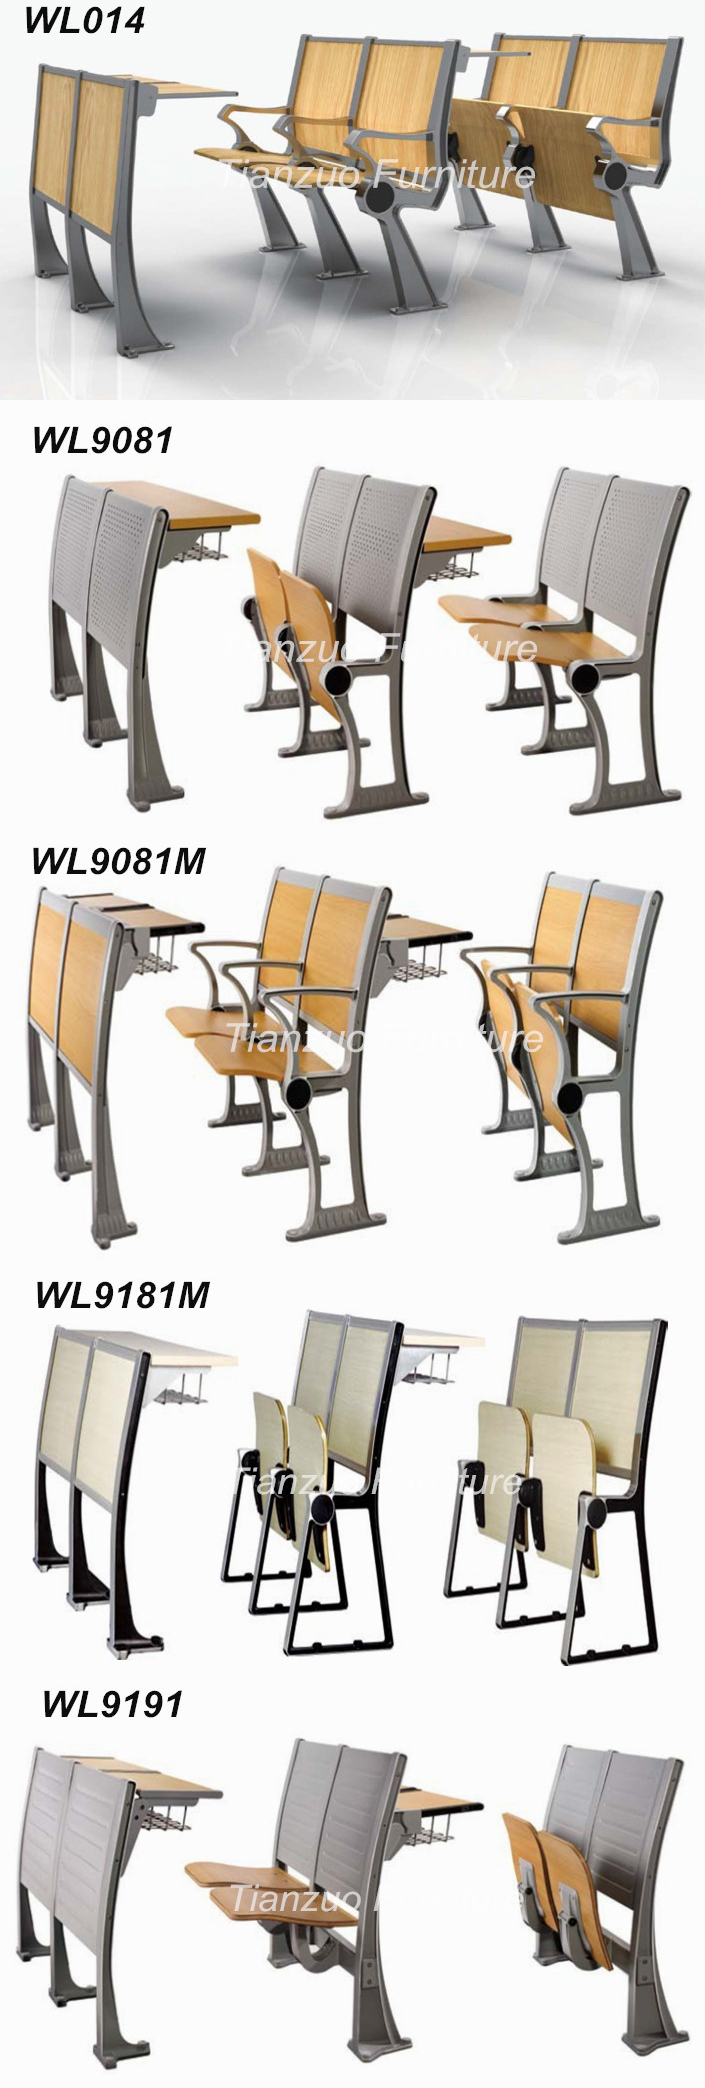 Study Table Chair For College Students WL918mf